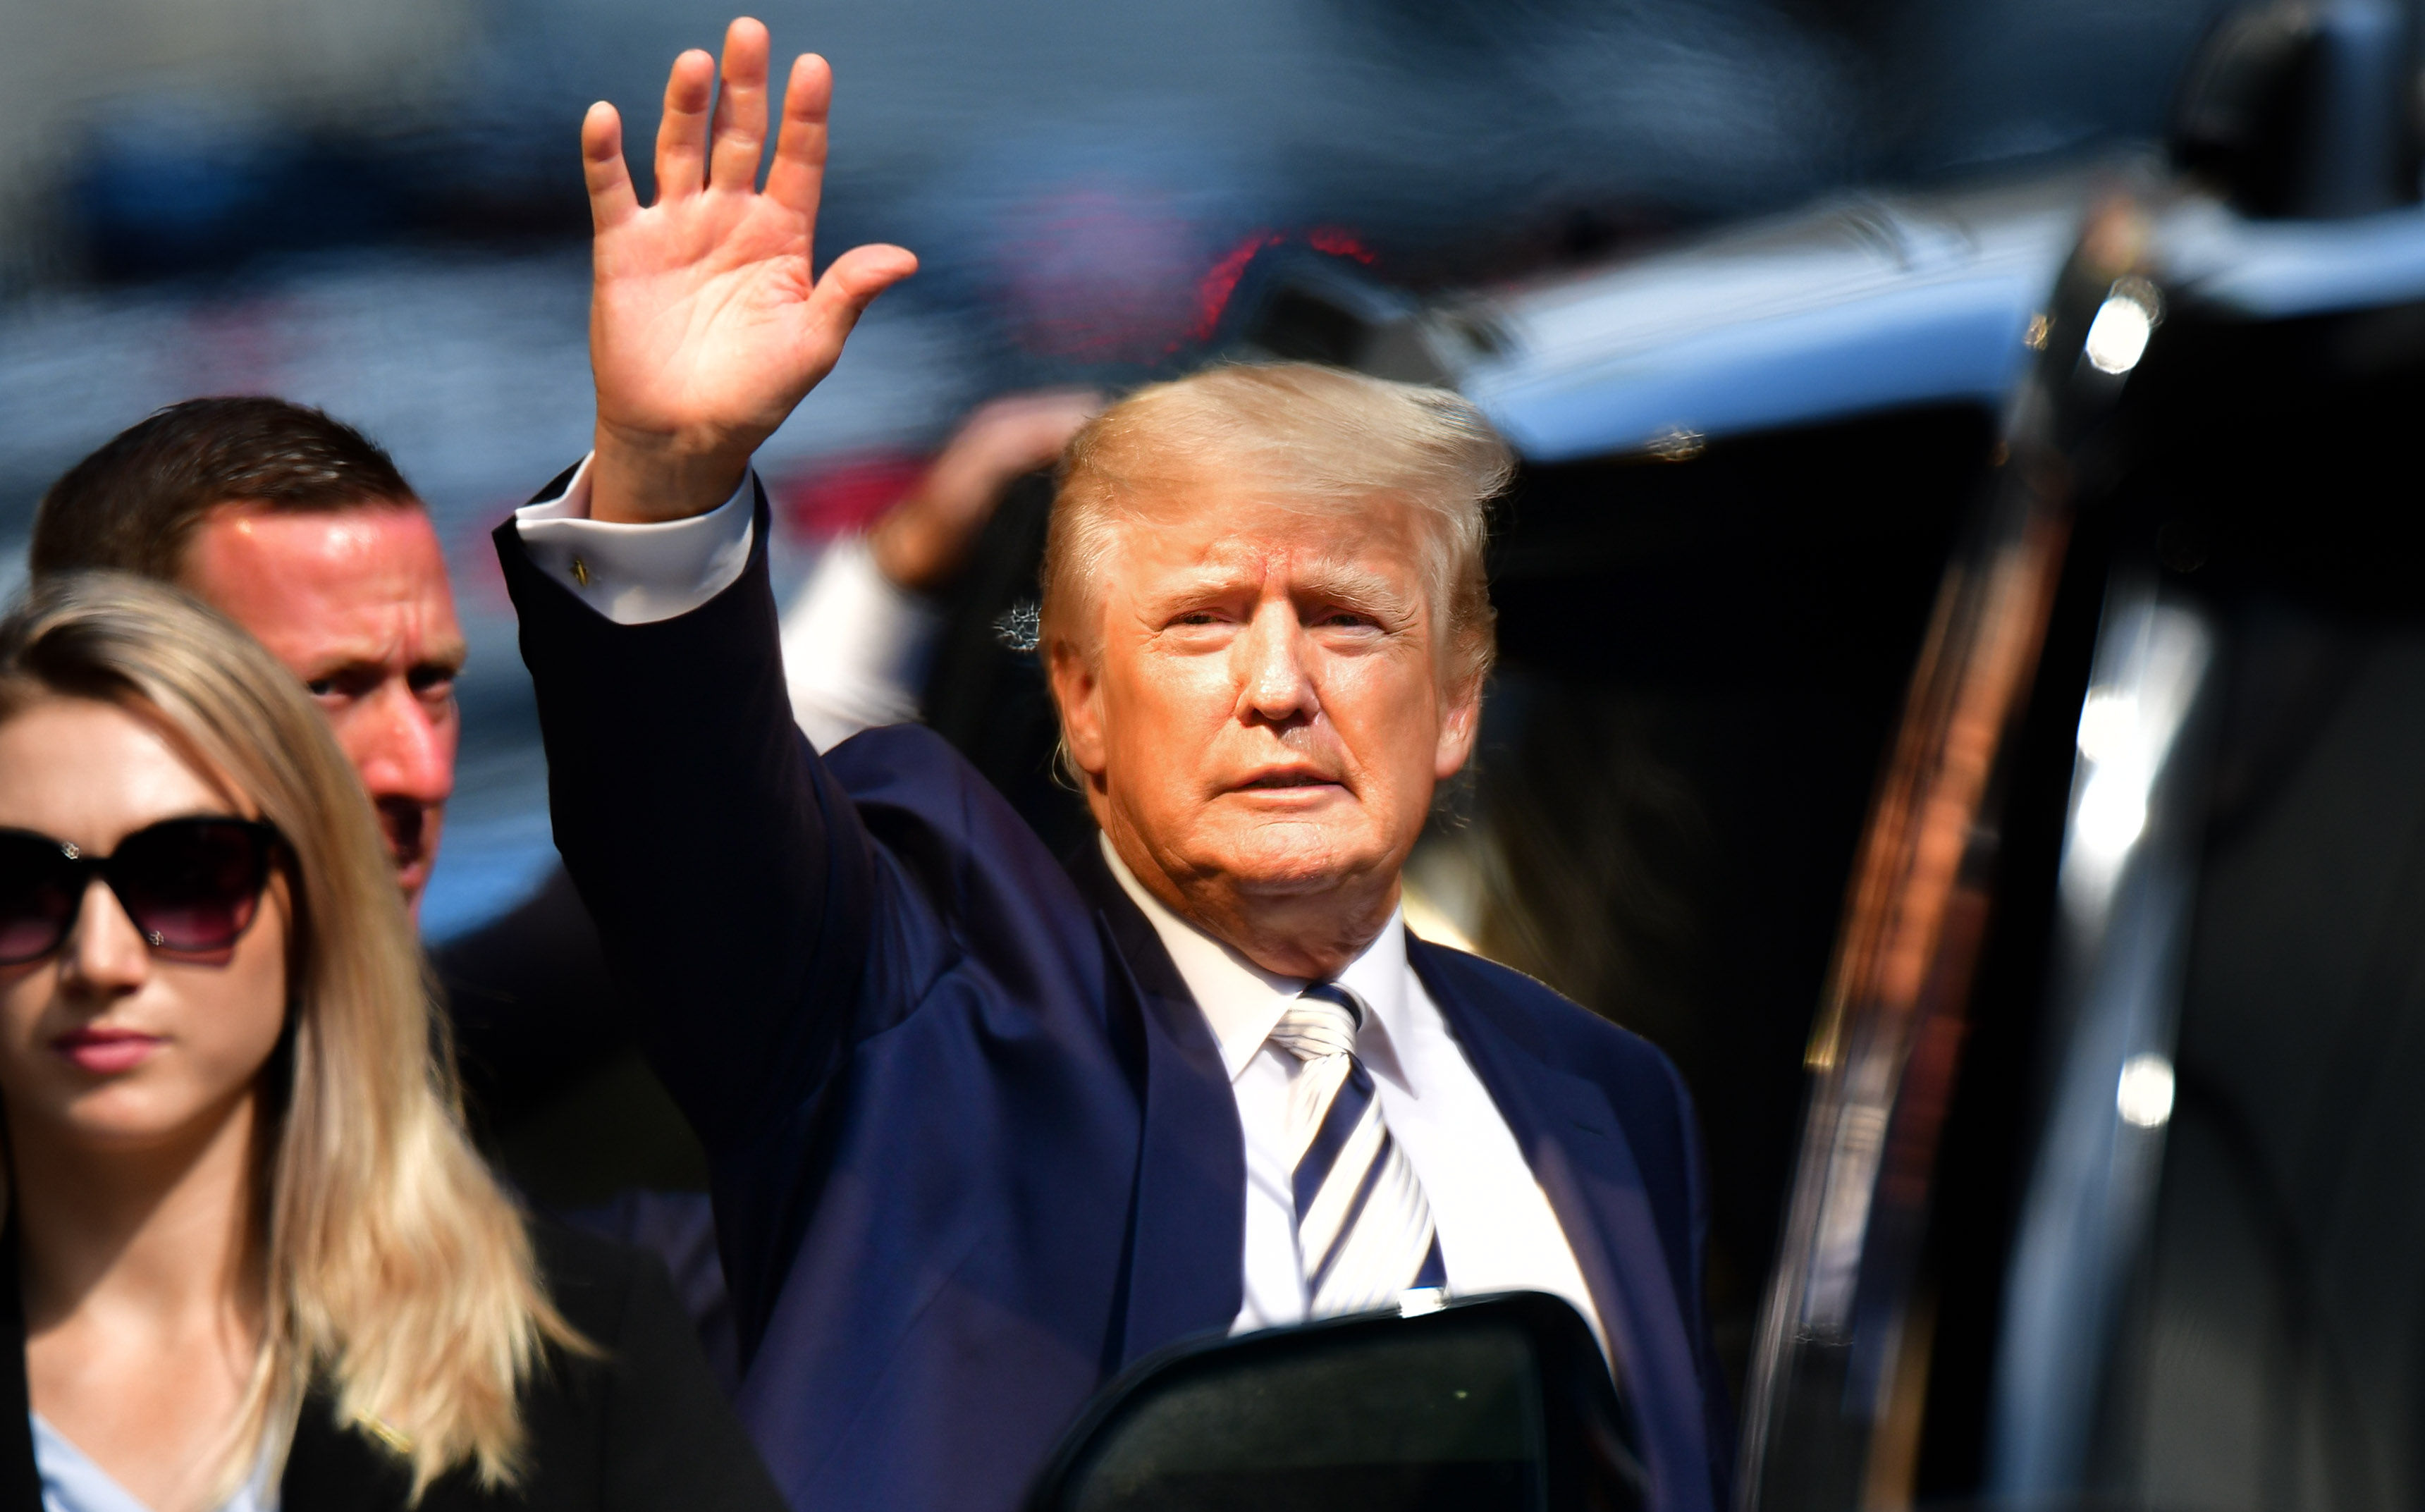 Donald Trump waves as he gets into a car.